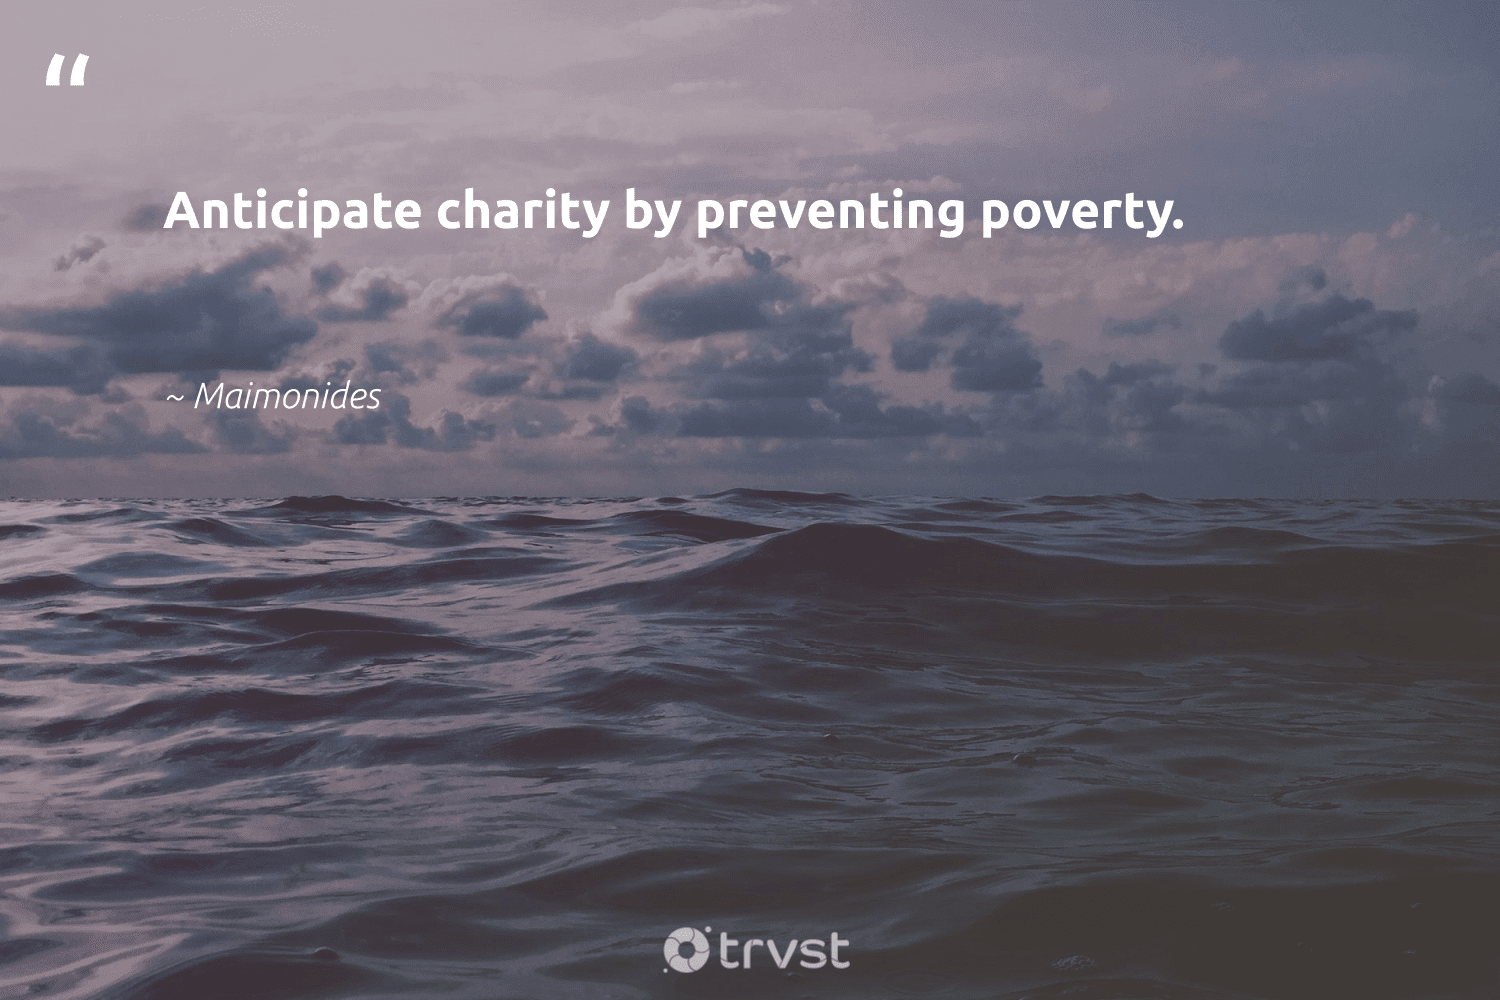 """""""Anticipate charity by preventing poverty.""""  - Maimonides #trvst #quotes #poverty #endpoverty #makeadifference #weareallone #bethechange #betterplanet #equalrights #impact #equalopportunity #inclusion"""